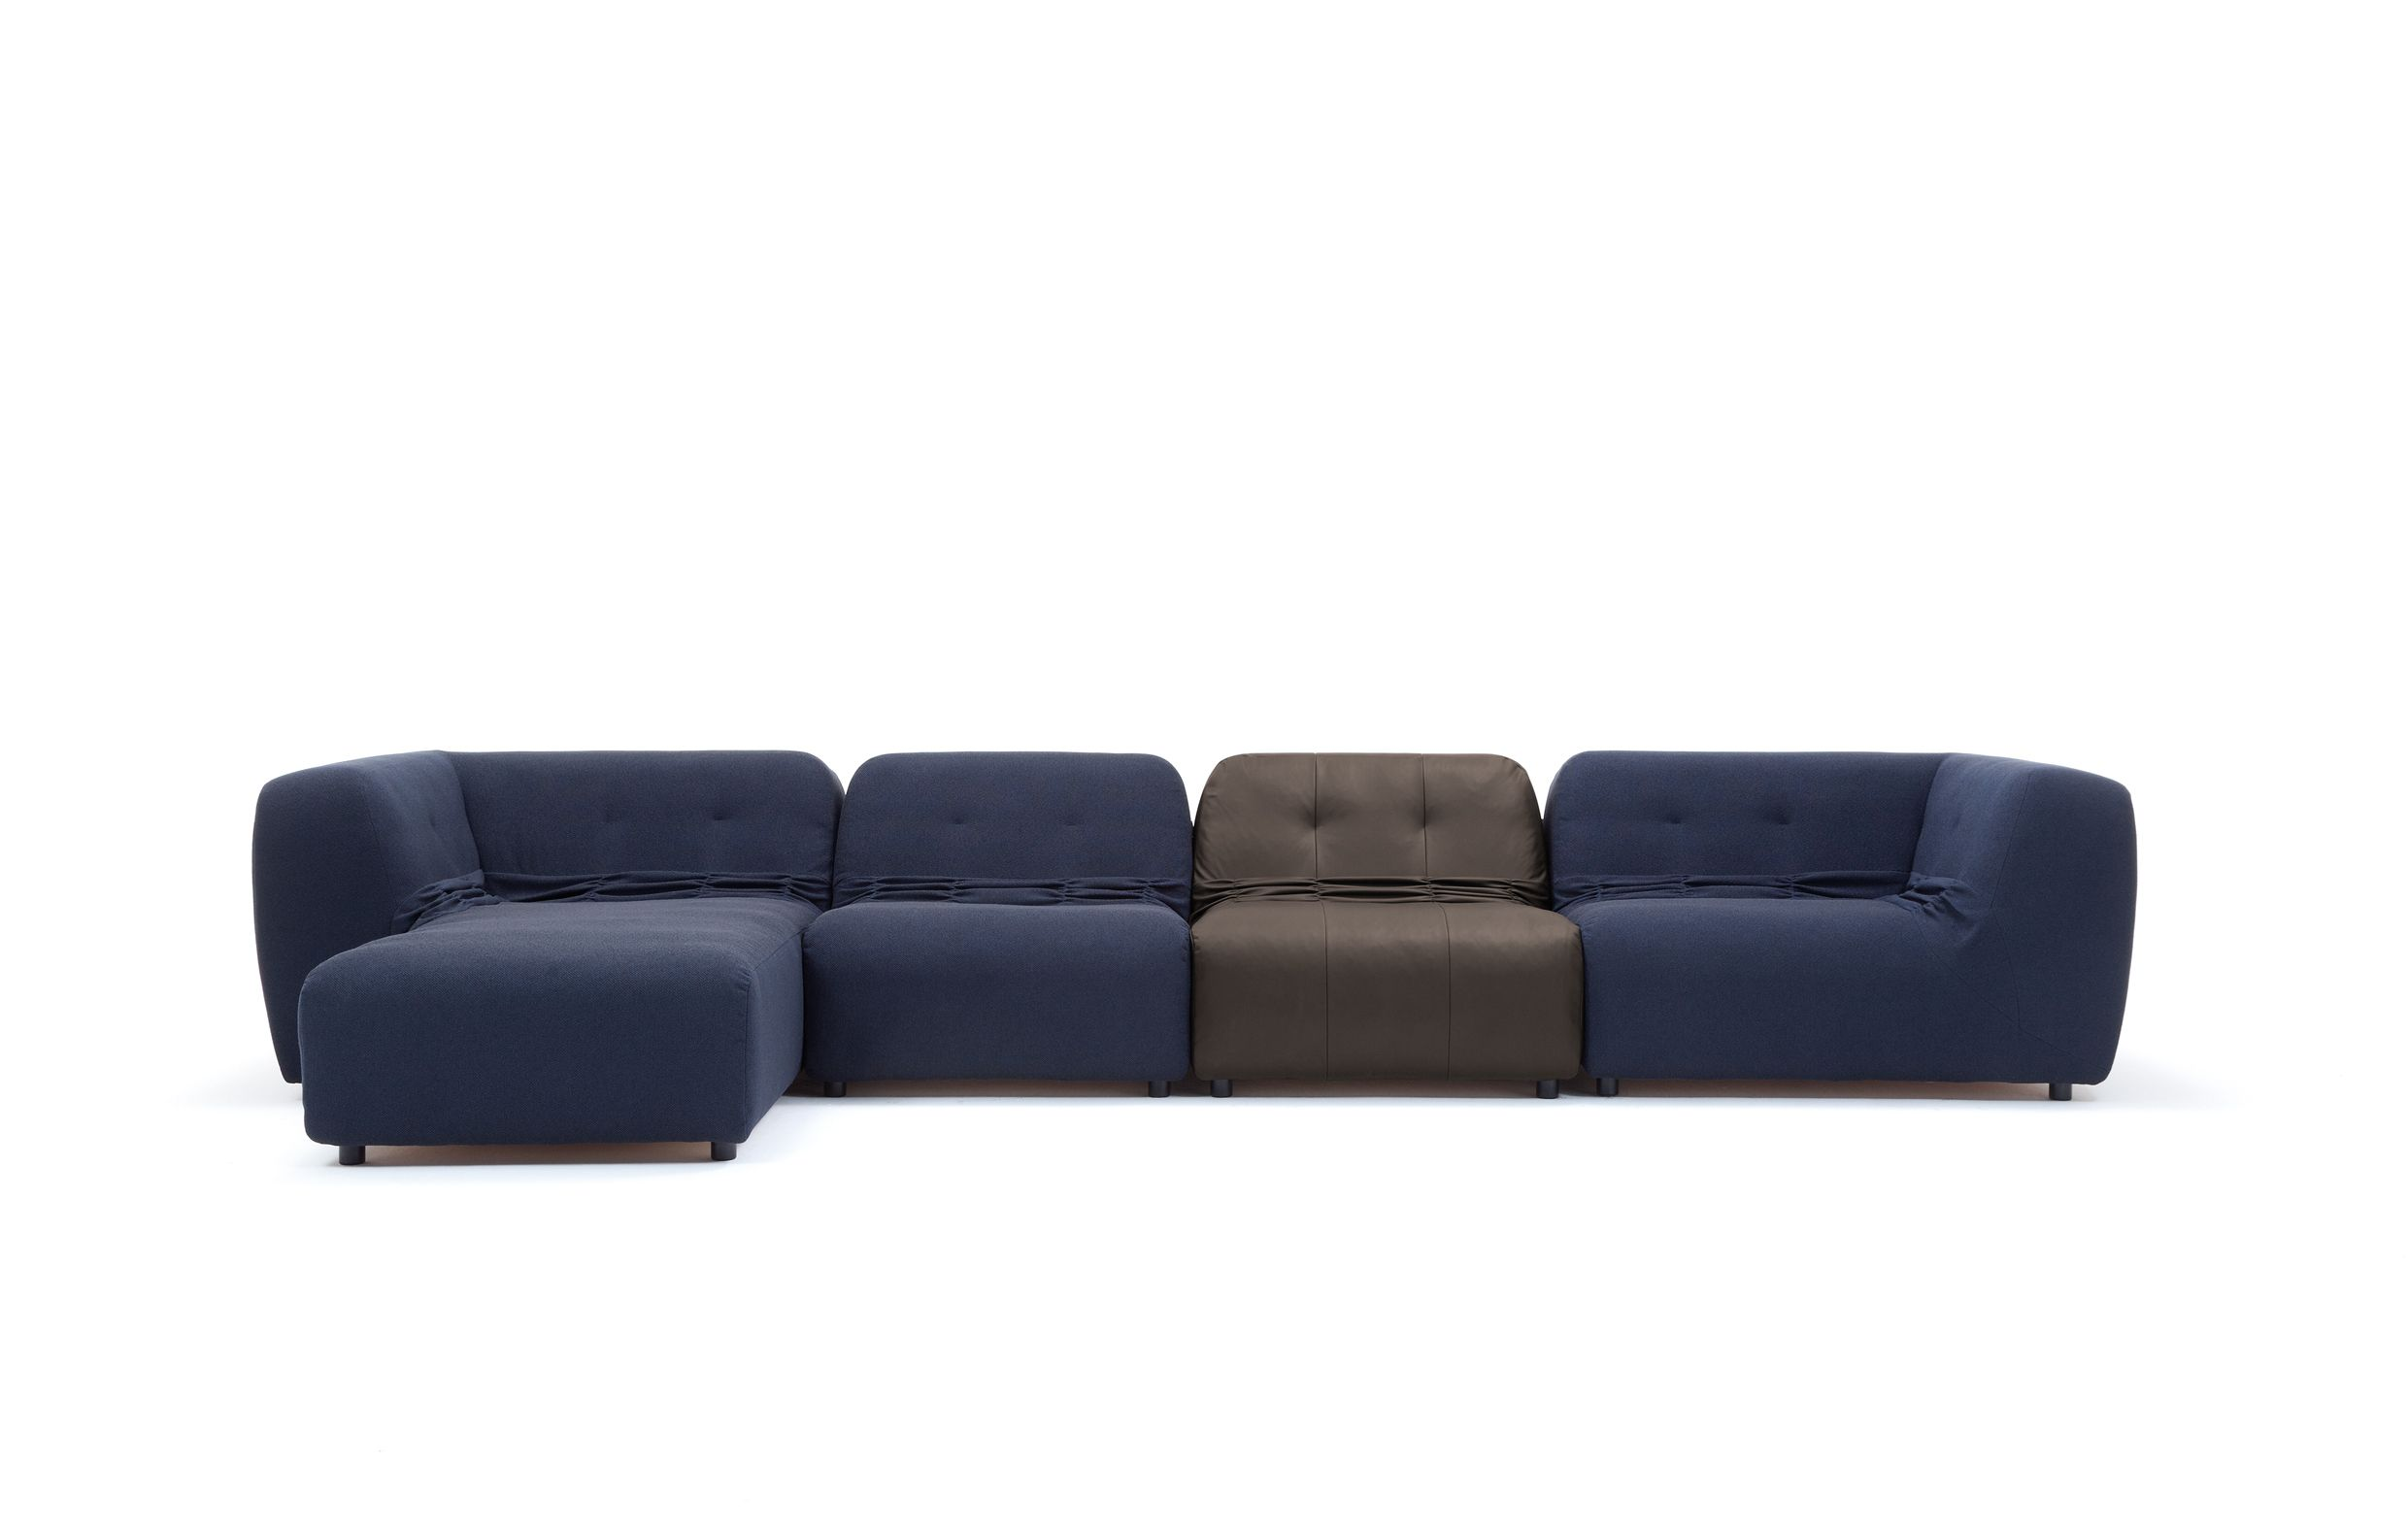 Rolf Benz Couch Rolf Benz Freistil 188 New Sofa Rolf Benz Studio Boston Design